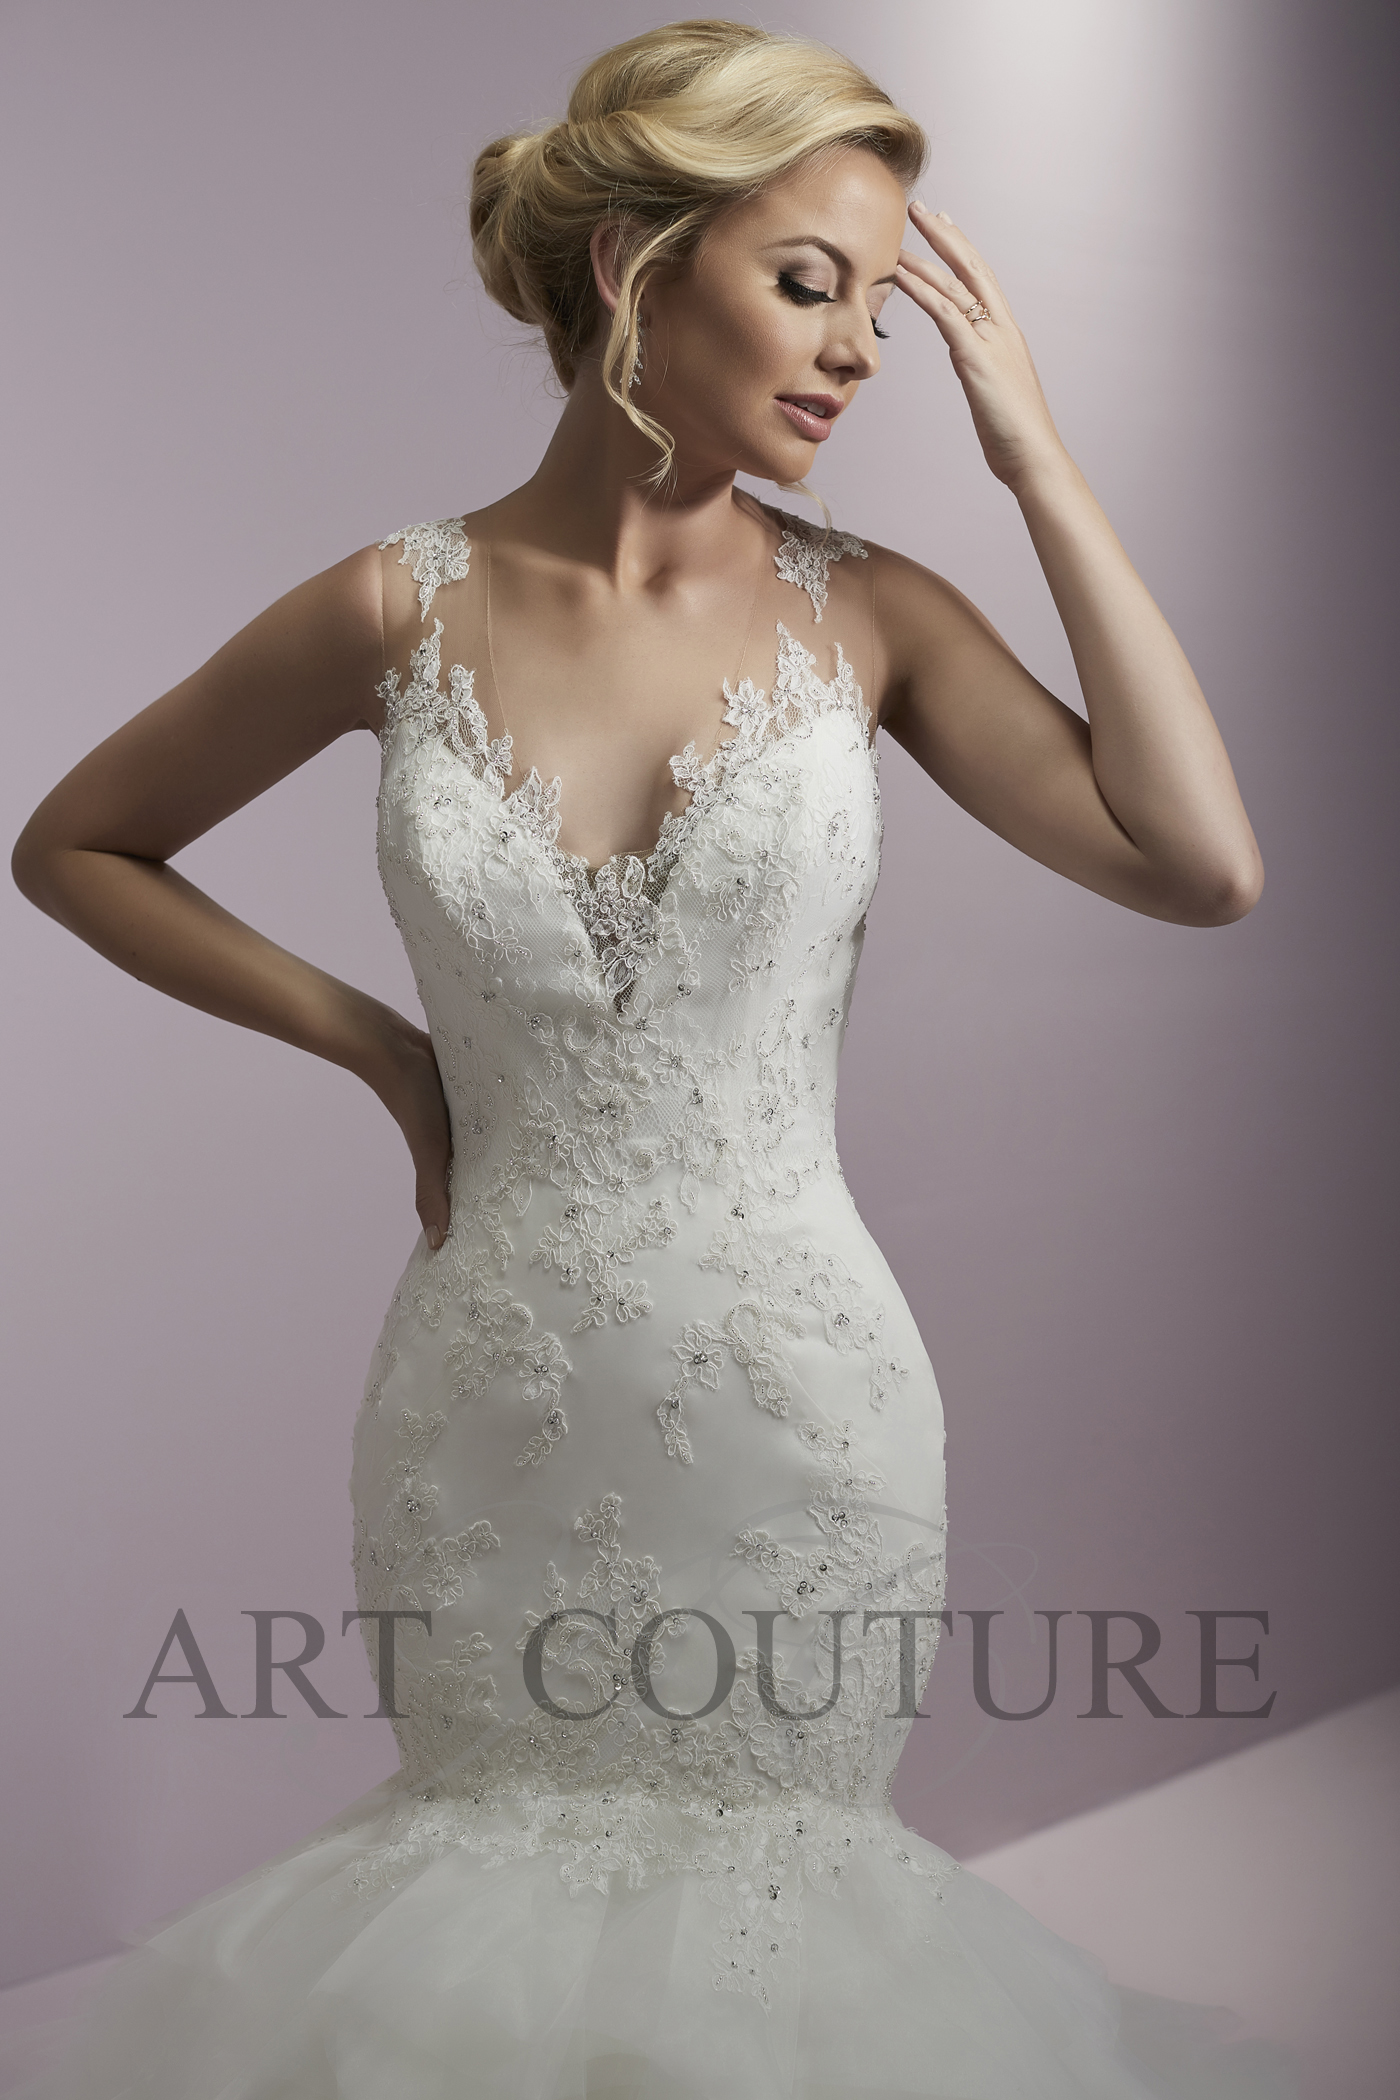 Art Couture Wedding Dress